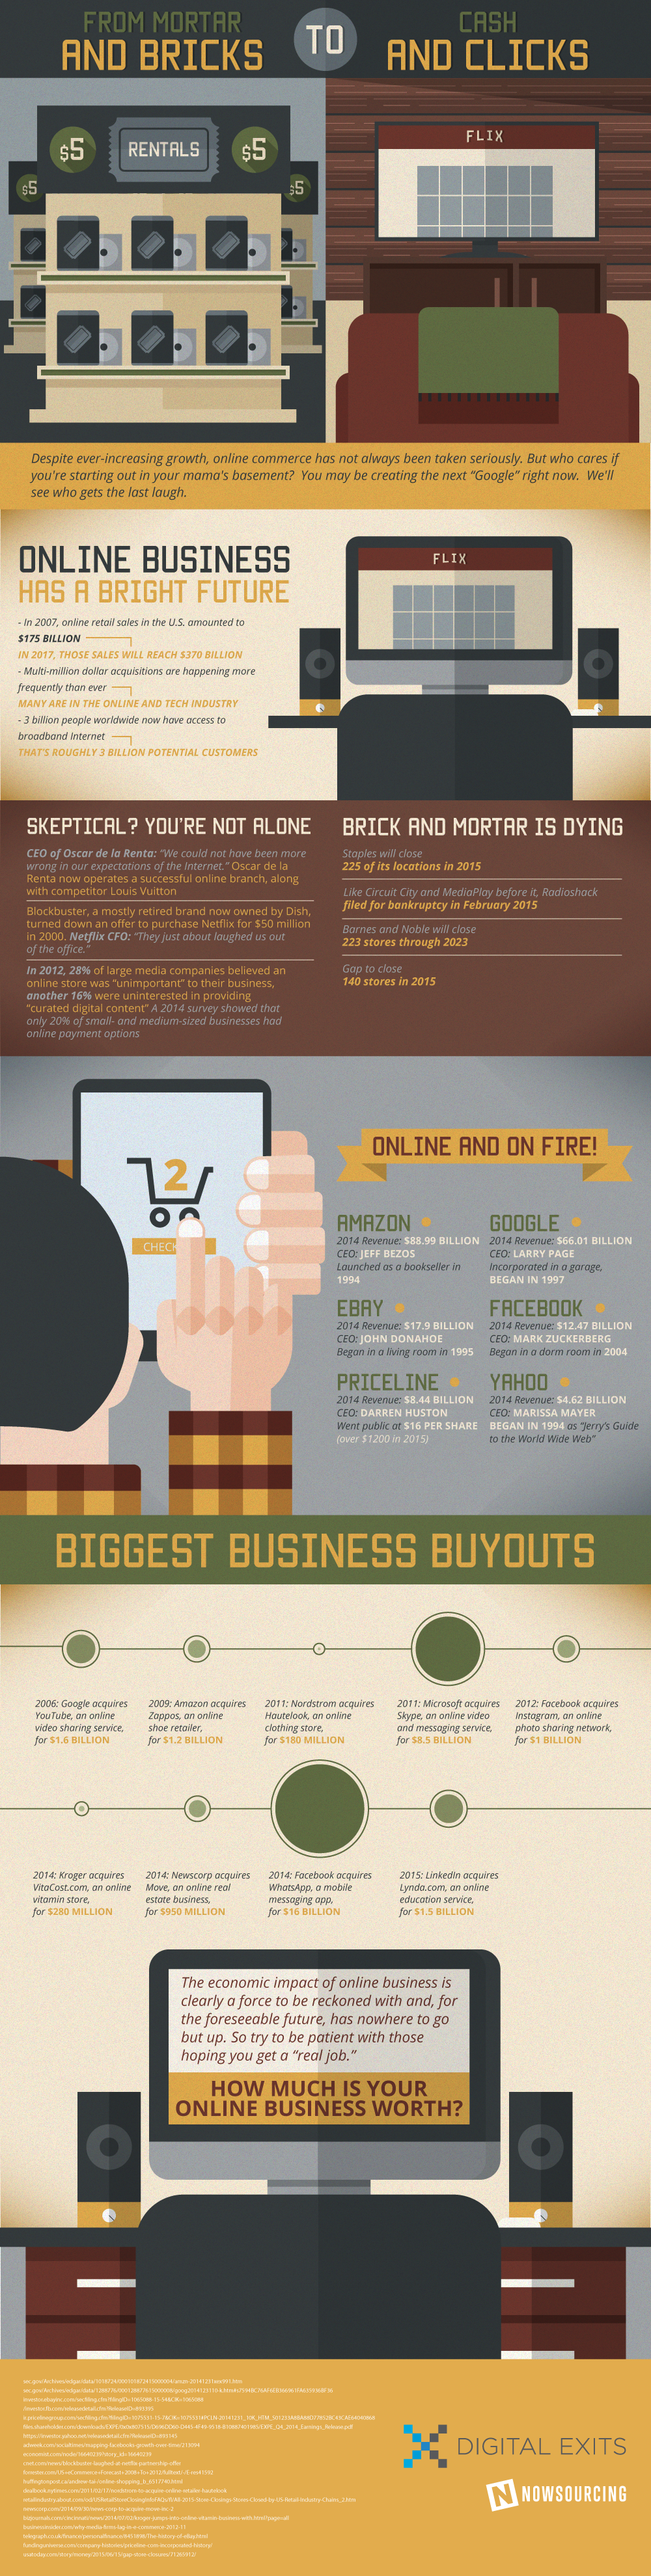 From Mortar And Bricks To Cash And Clicks